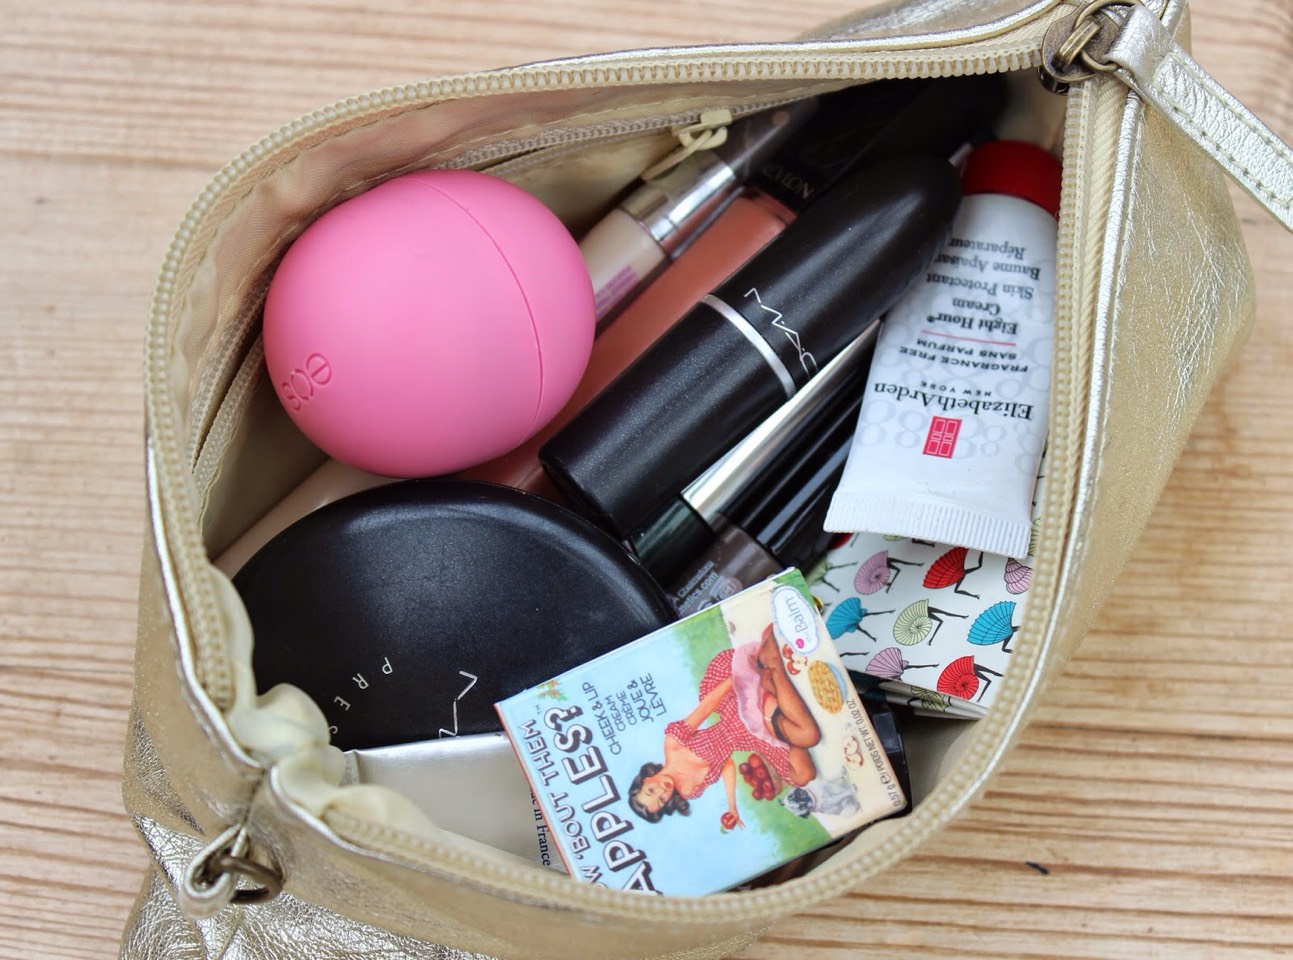 This Tip will SAVE UR LIFE, after reading this tip you will have every thing you need in your purse 🍉